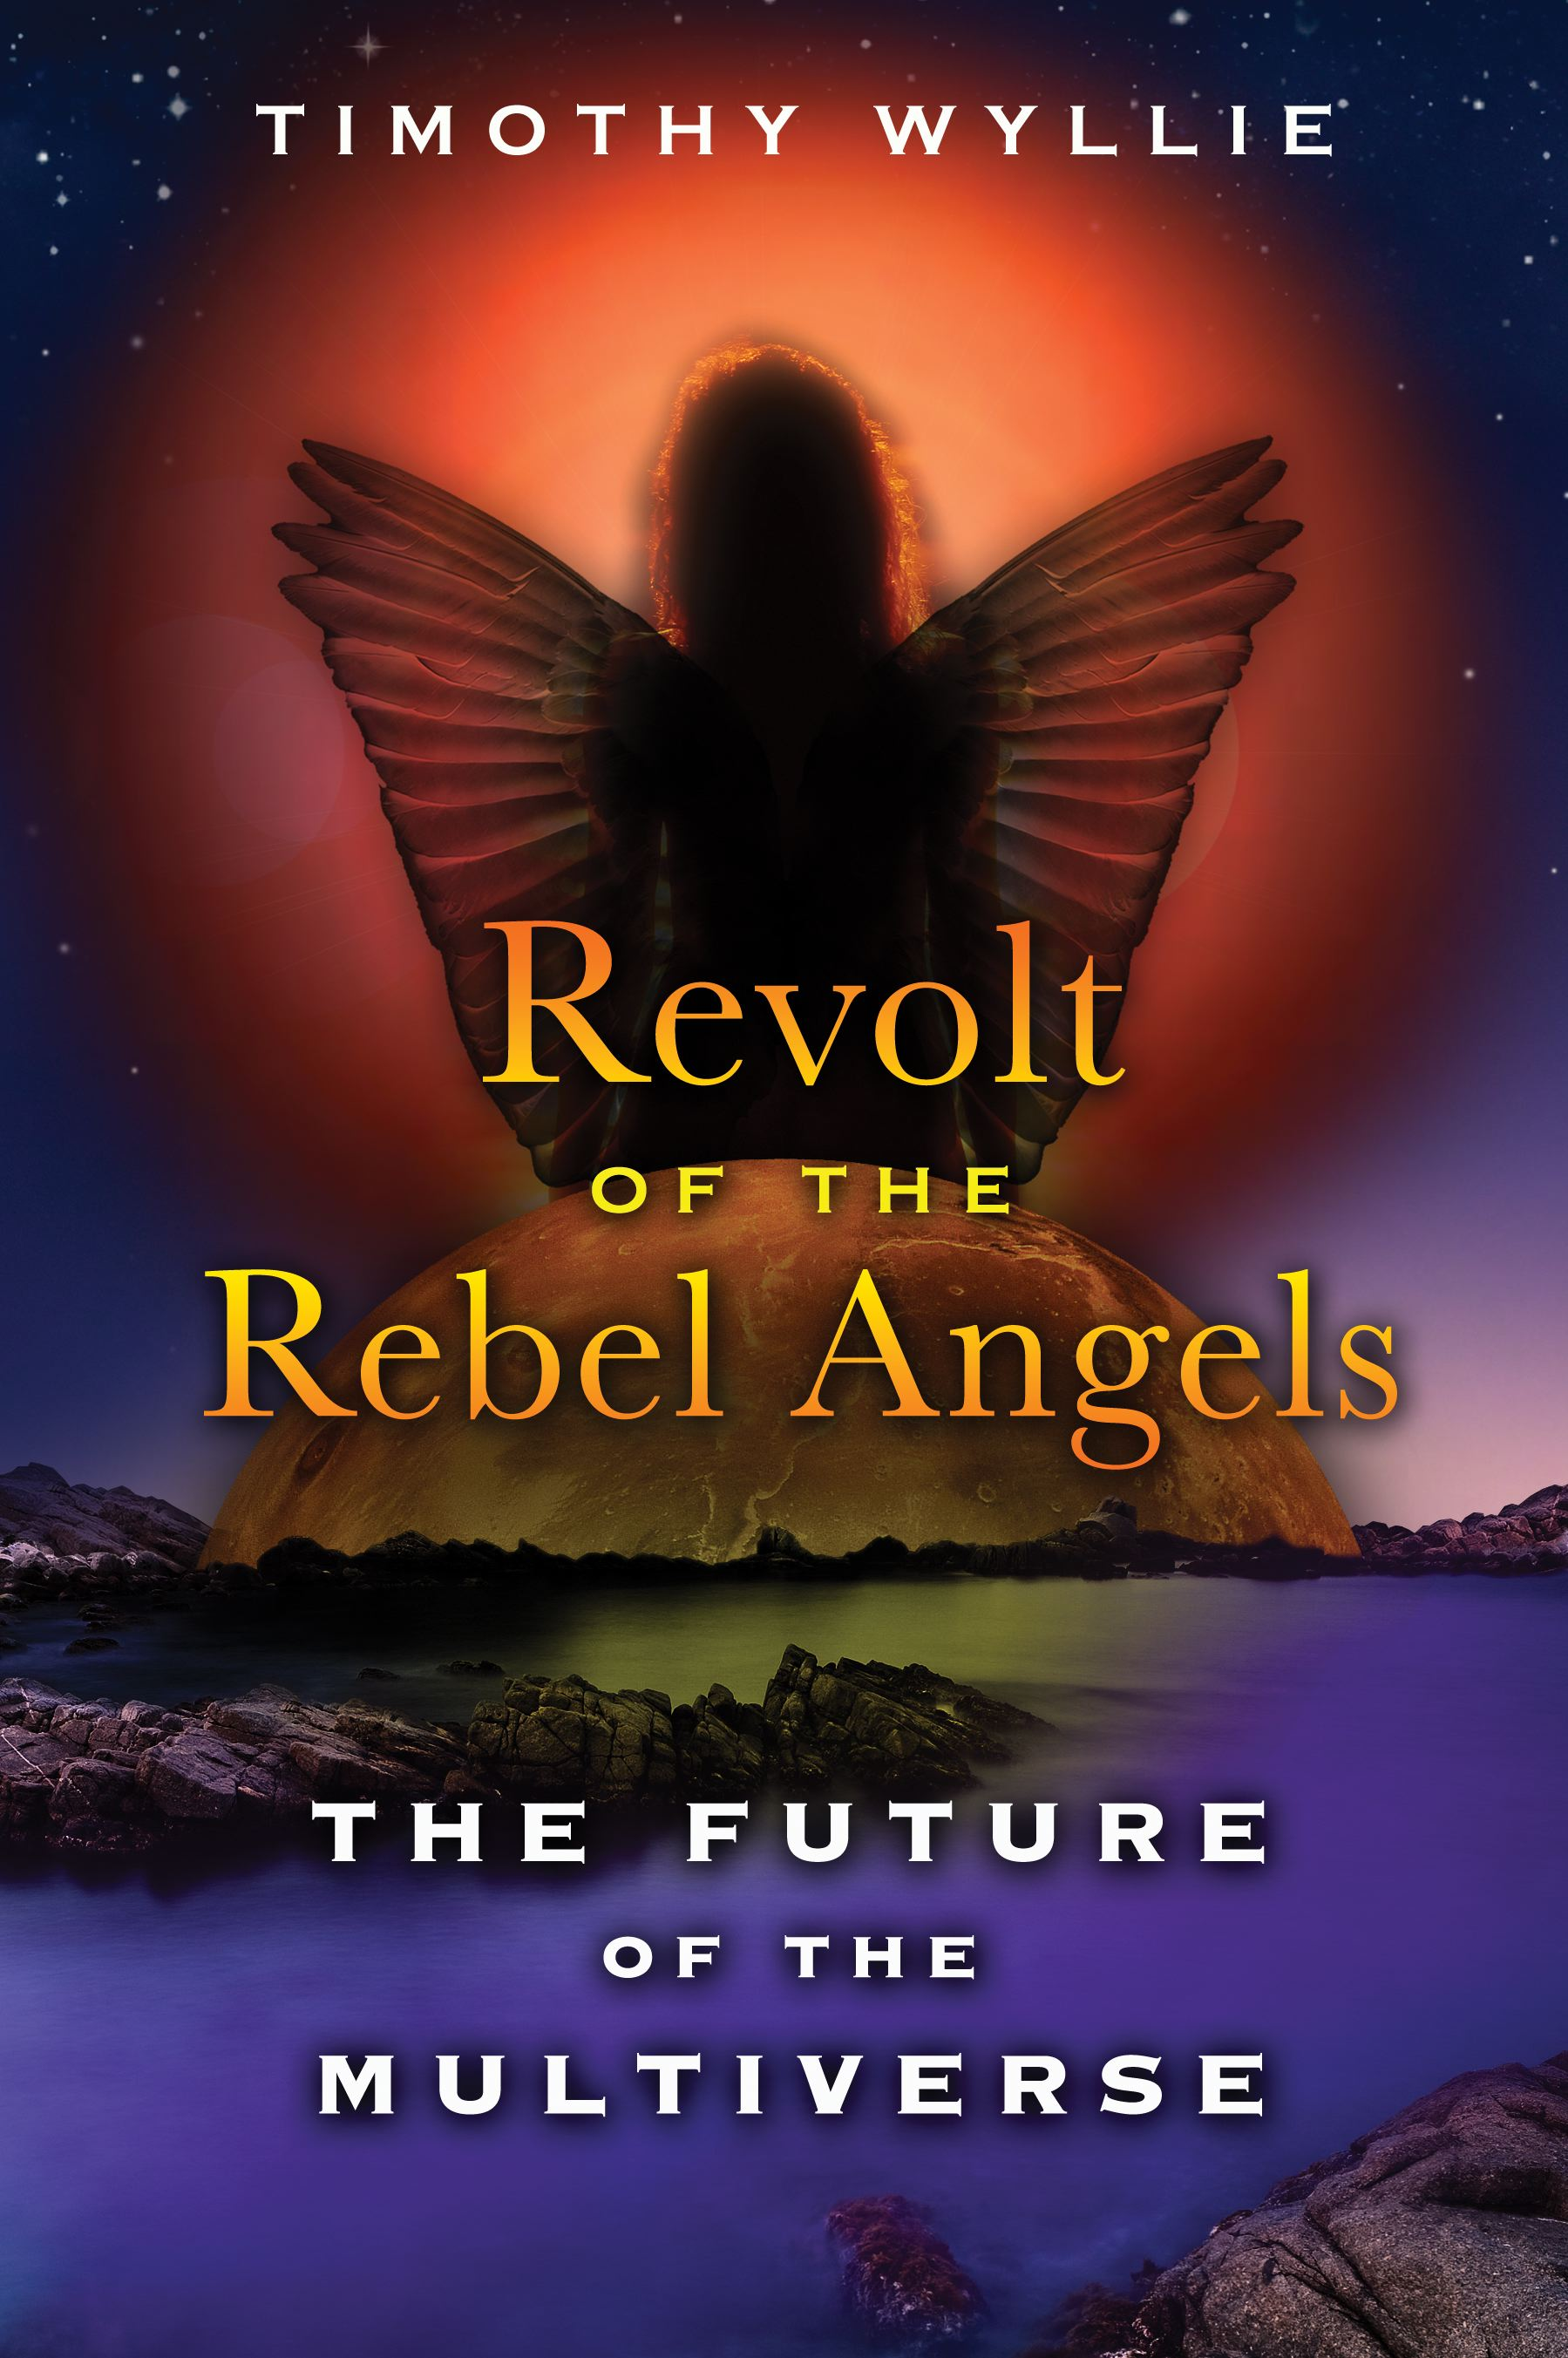 Revolt of the rebel angels 9781591431749 hr